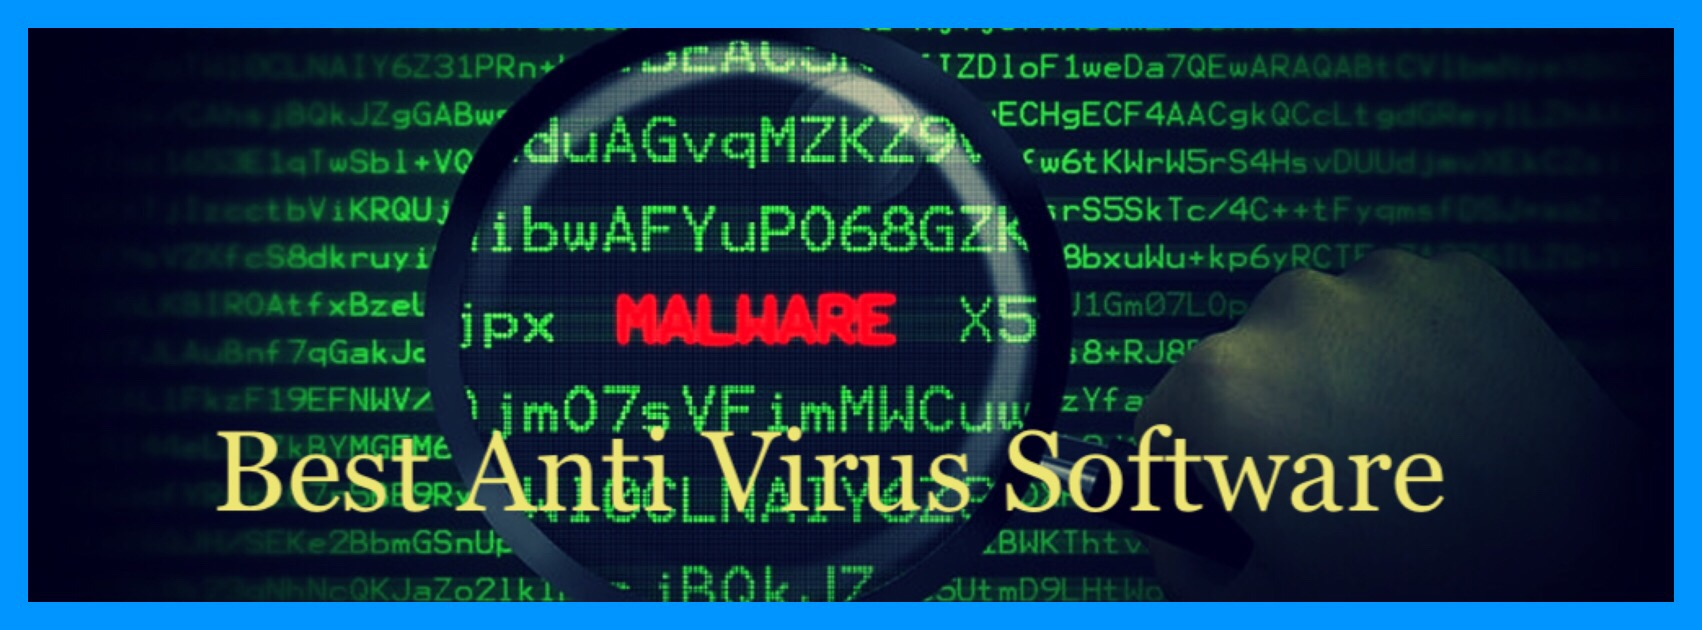 AntiVirus Removal Software  http://www.cvilleseo.com